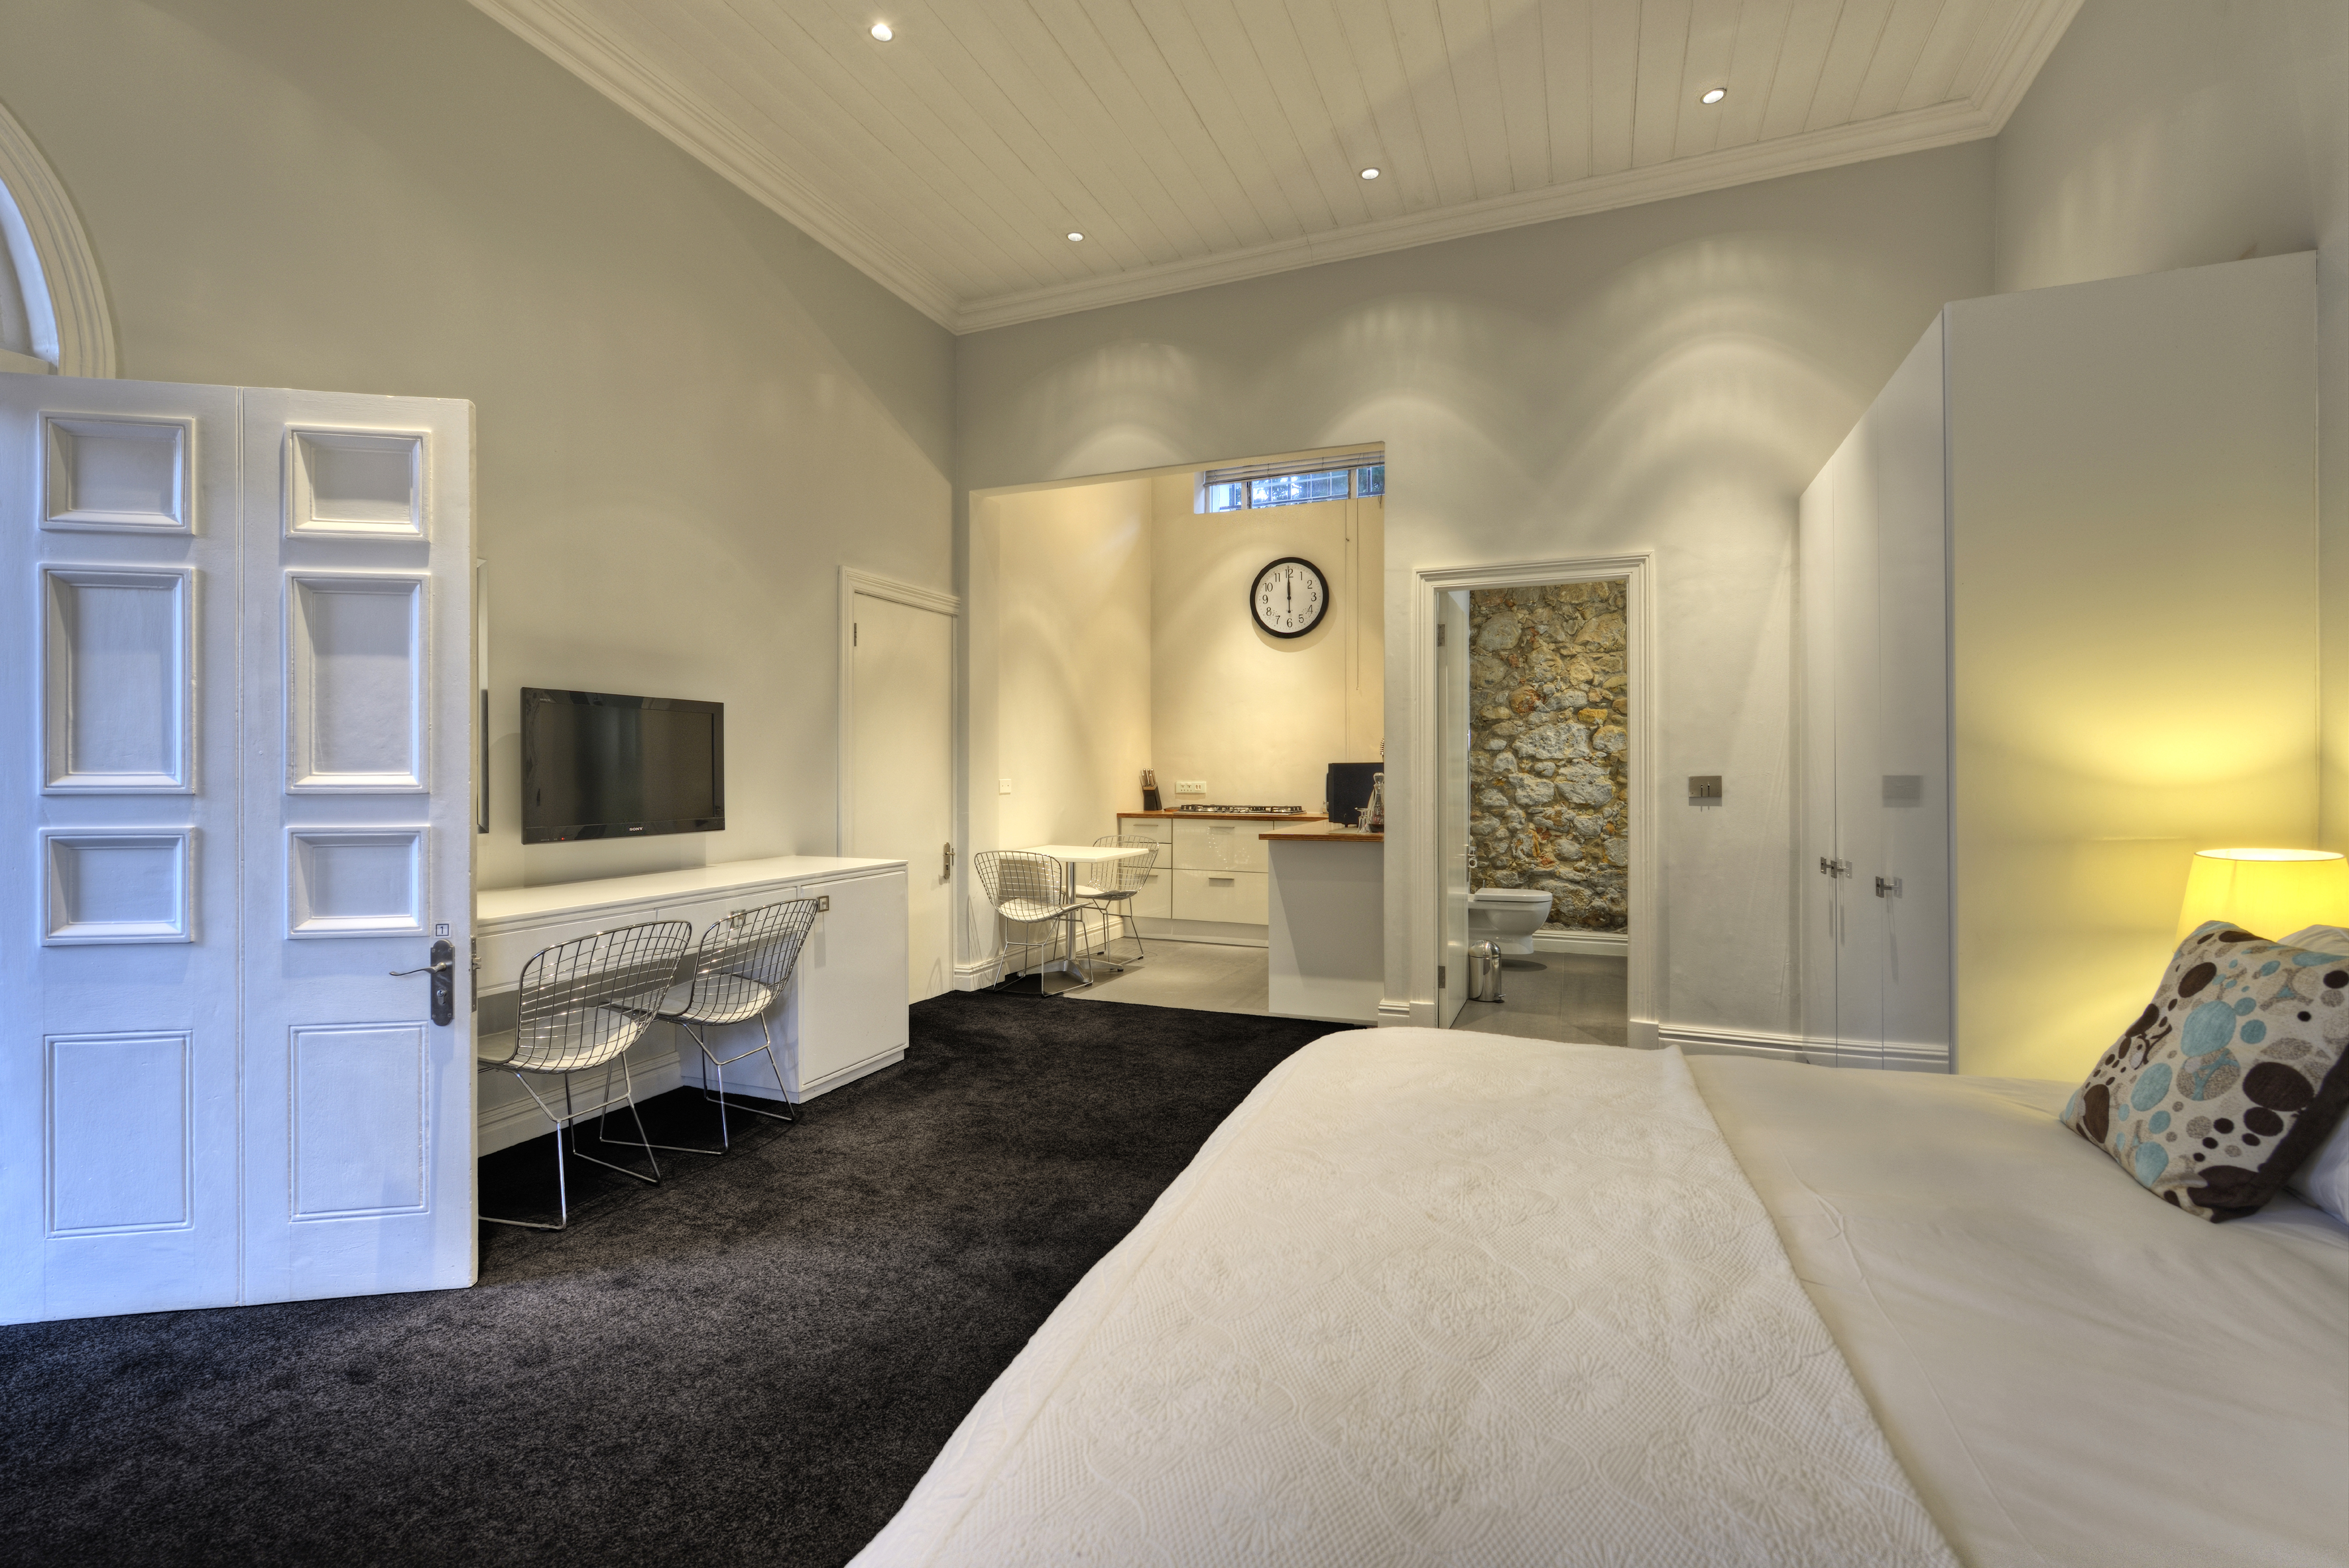 Studio suite at The Three Boutique Hotel in the Gardens district of Cape Town